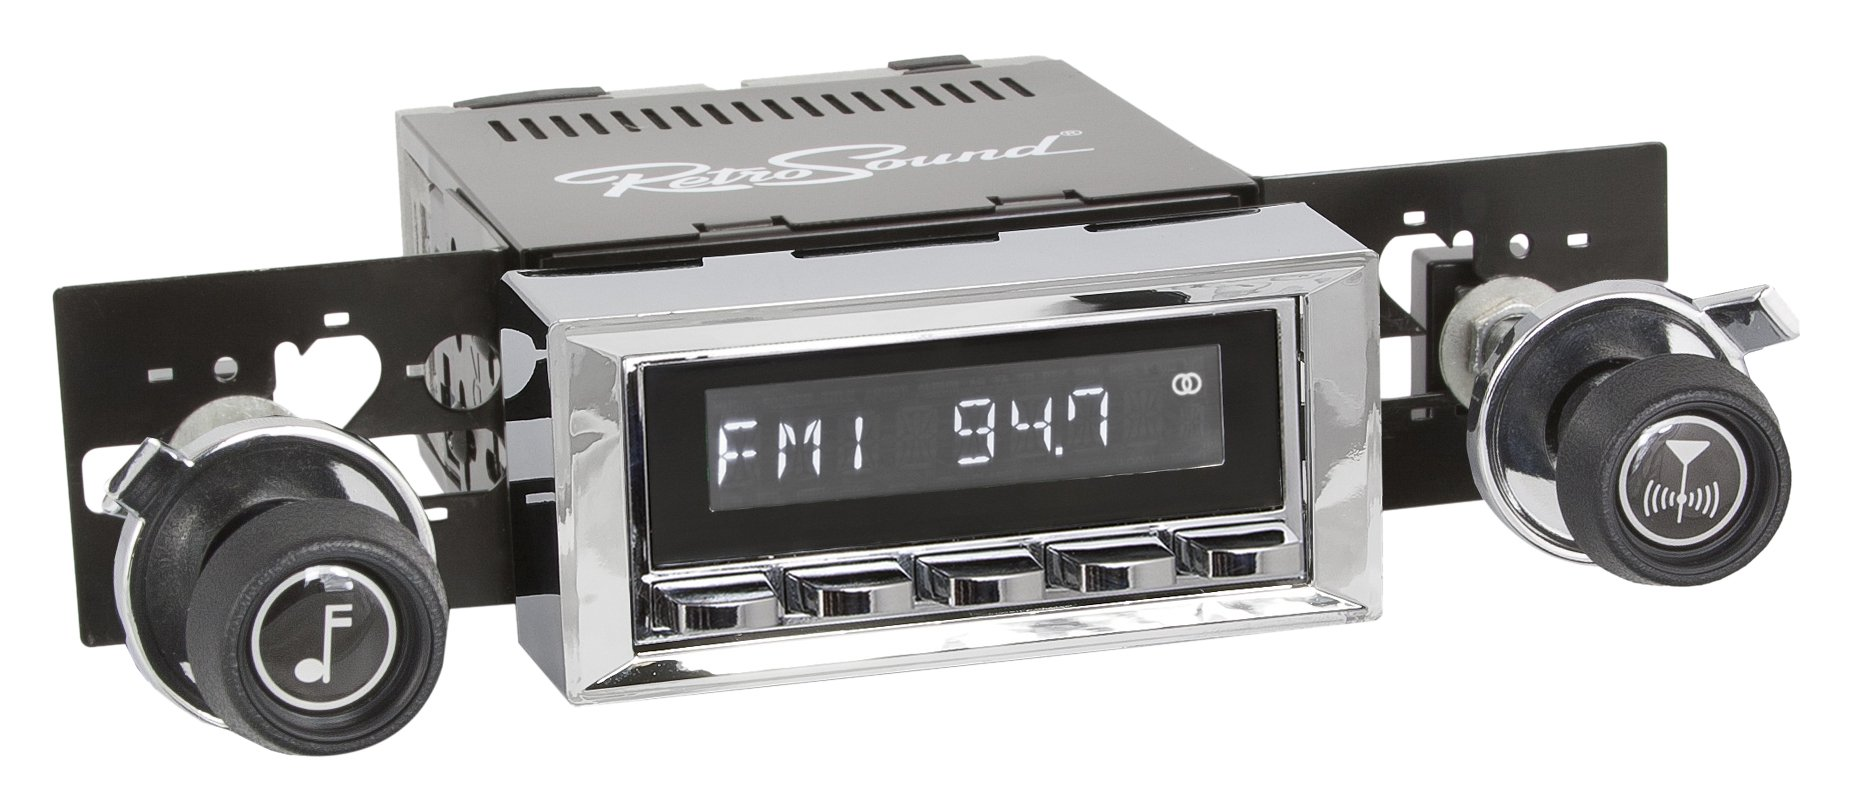 Retro Manufacturing LC-116-37-73-B 1973-85 GM Radio by Retro Manufacturing